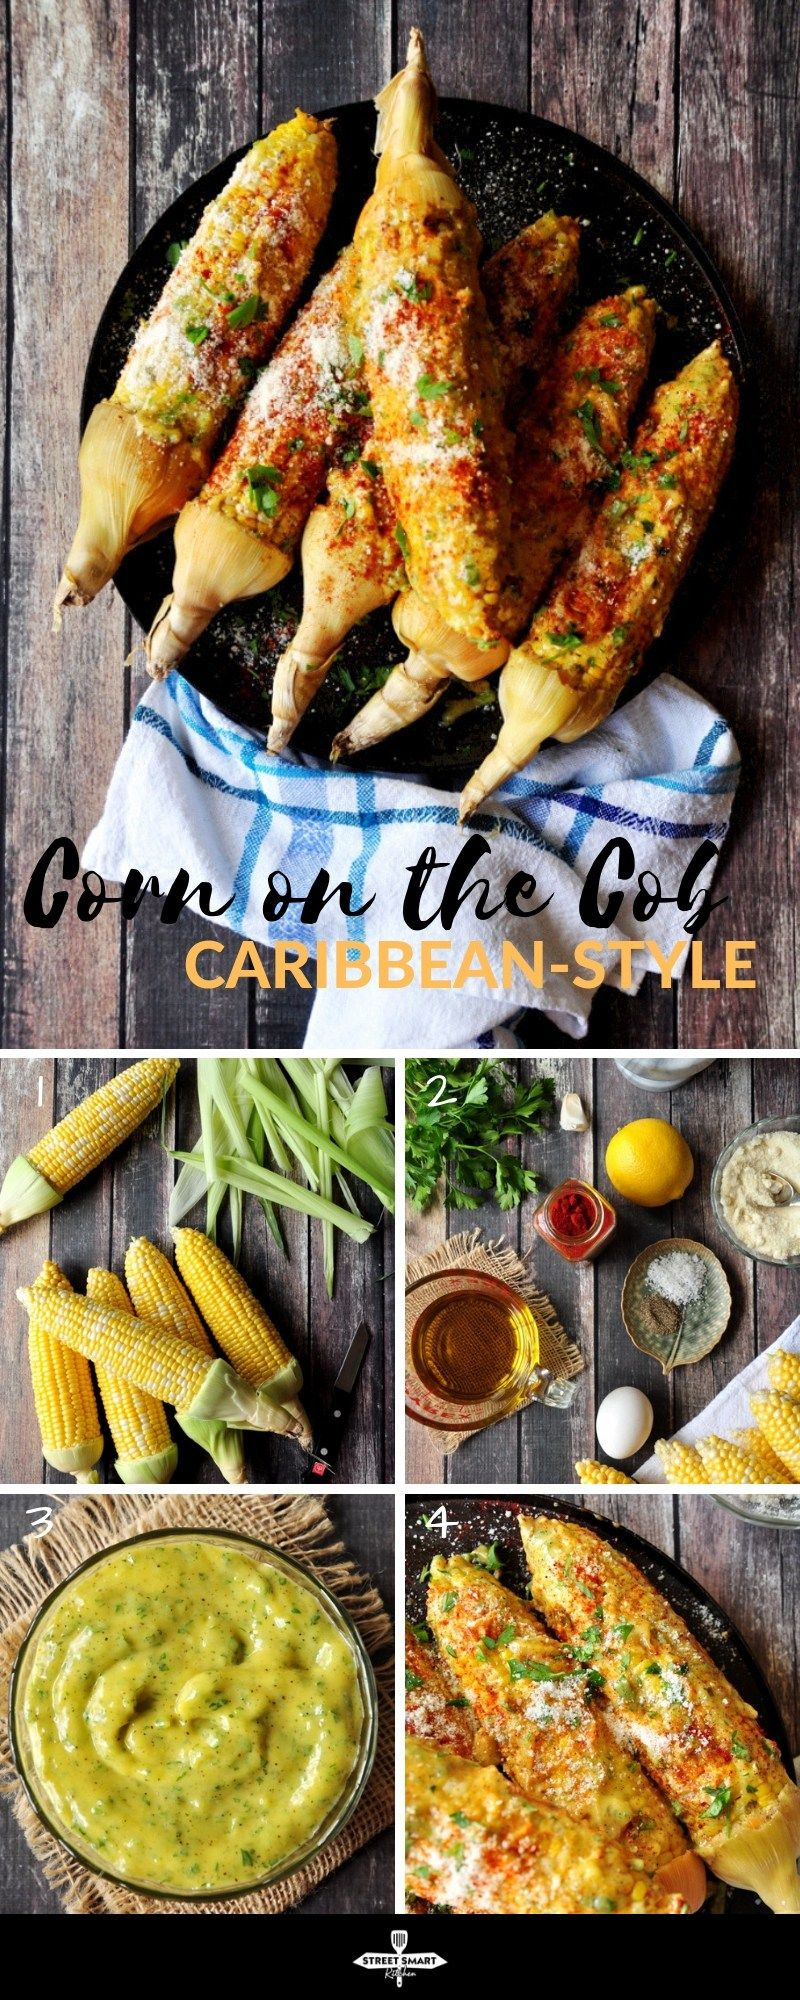 Caribbean-Style Corn on the Cob images